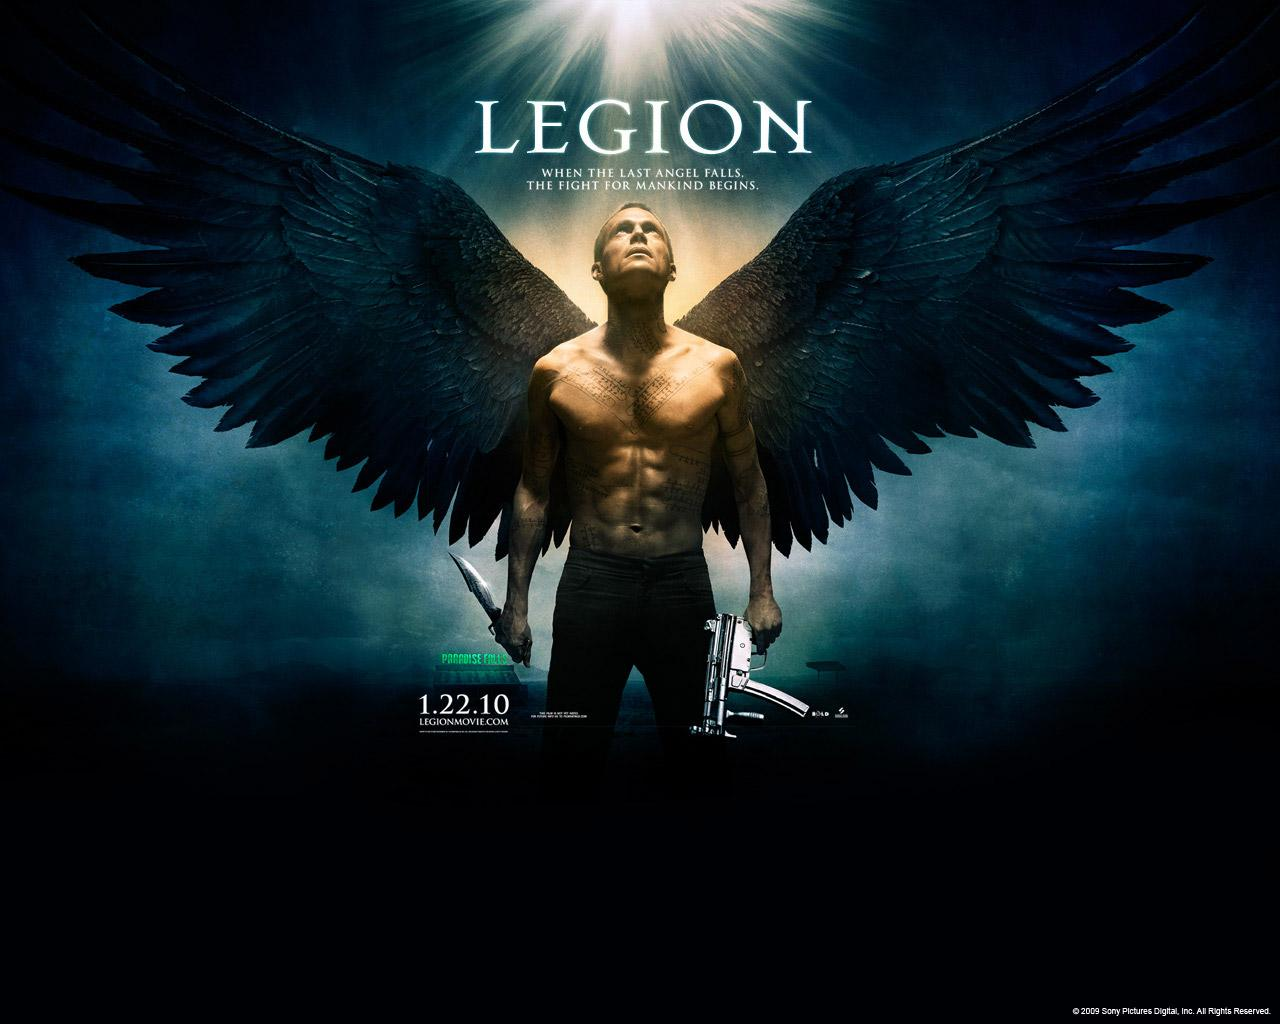 legion-the-movie-wallpaper-hd.jpg (1280×1024)